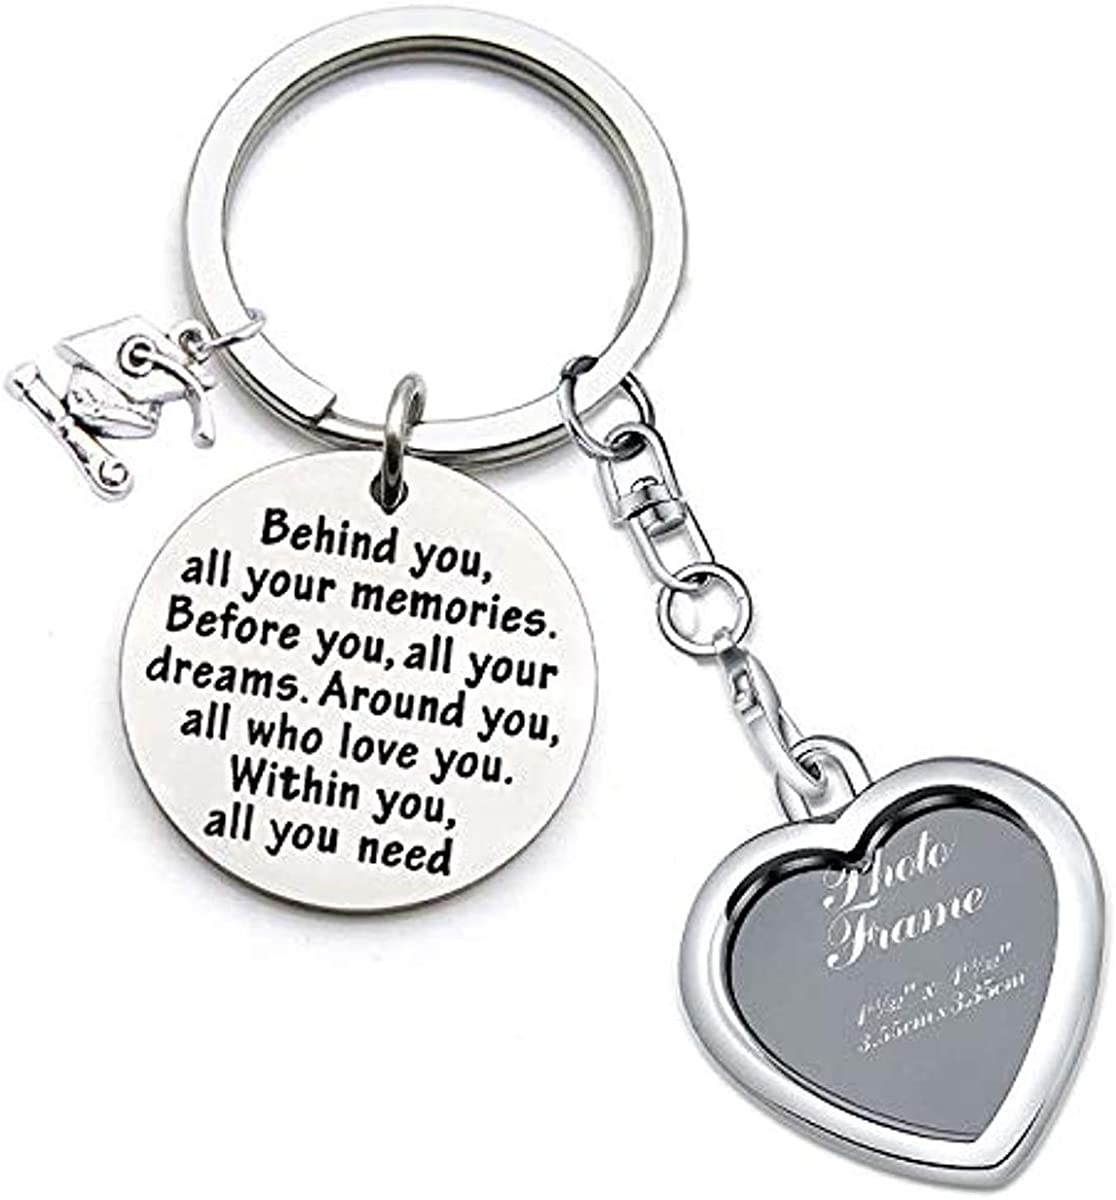 SNOWLIN Compass Jewelry Graduation Gift Inspirational Keychain Gifts Compass Necklace Graduation Gifts for Her/His 2019 You All Your Dream Graduation Keychain/Necklace